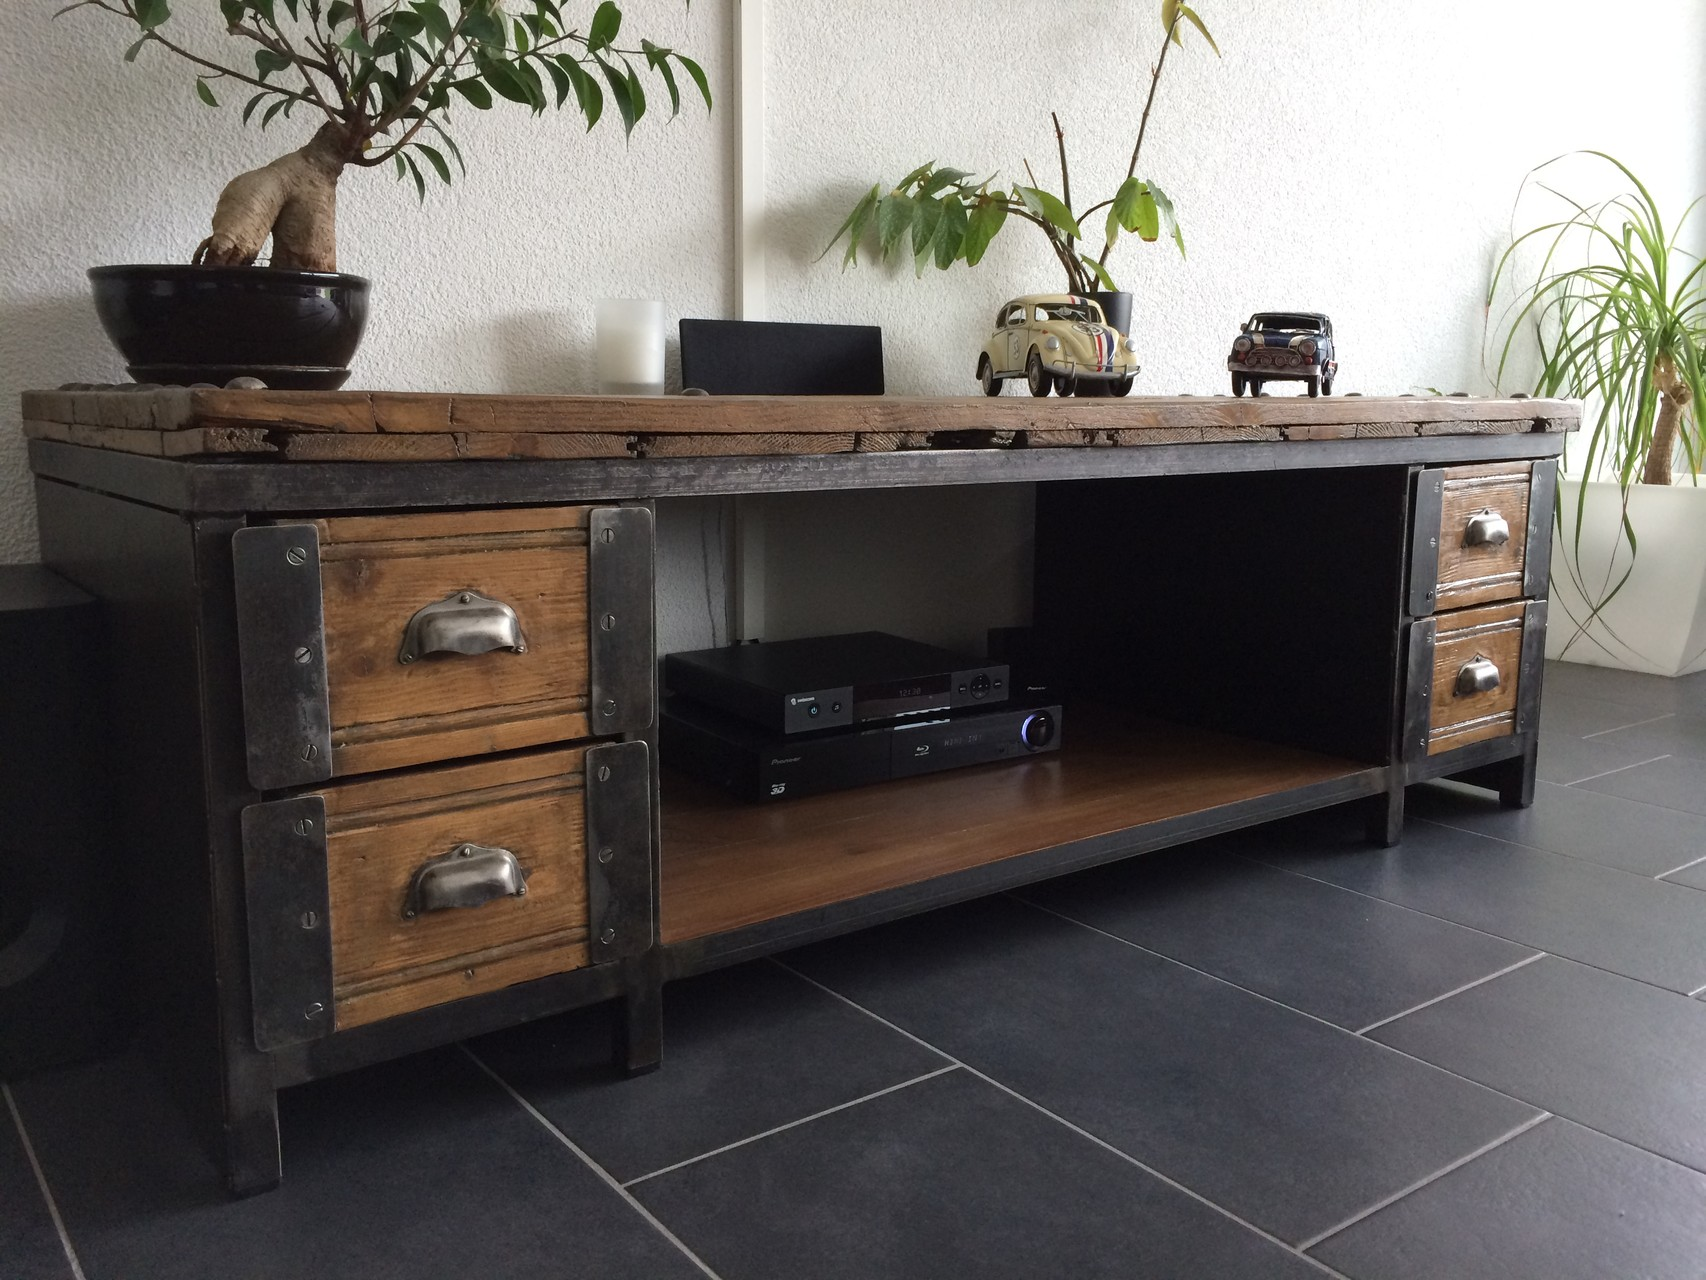 Table basse meuble tv industriel atelier vintage - Meuble tv industriel occasion ...